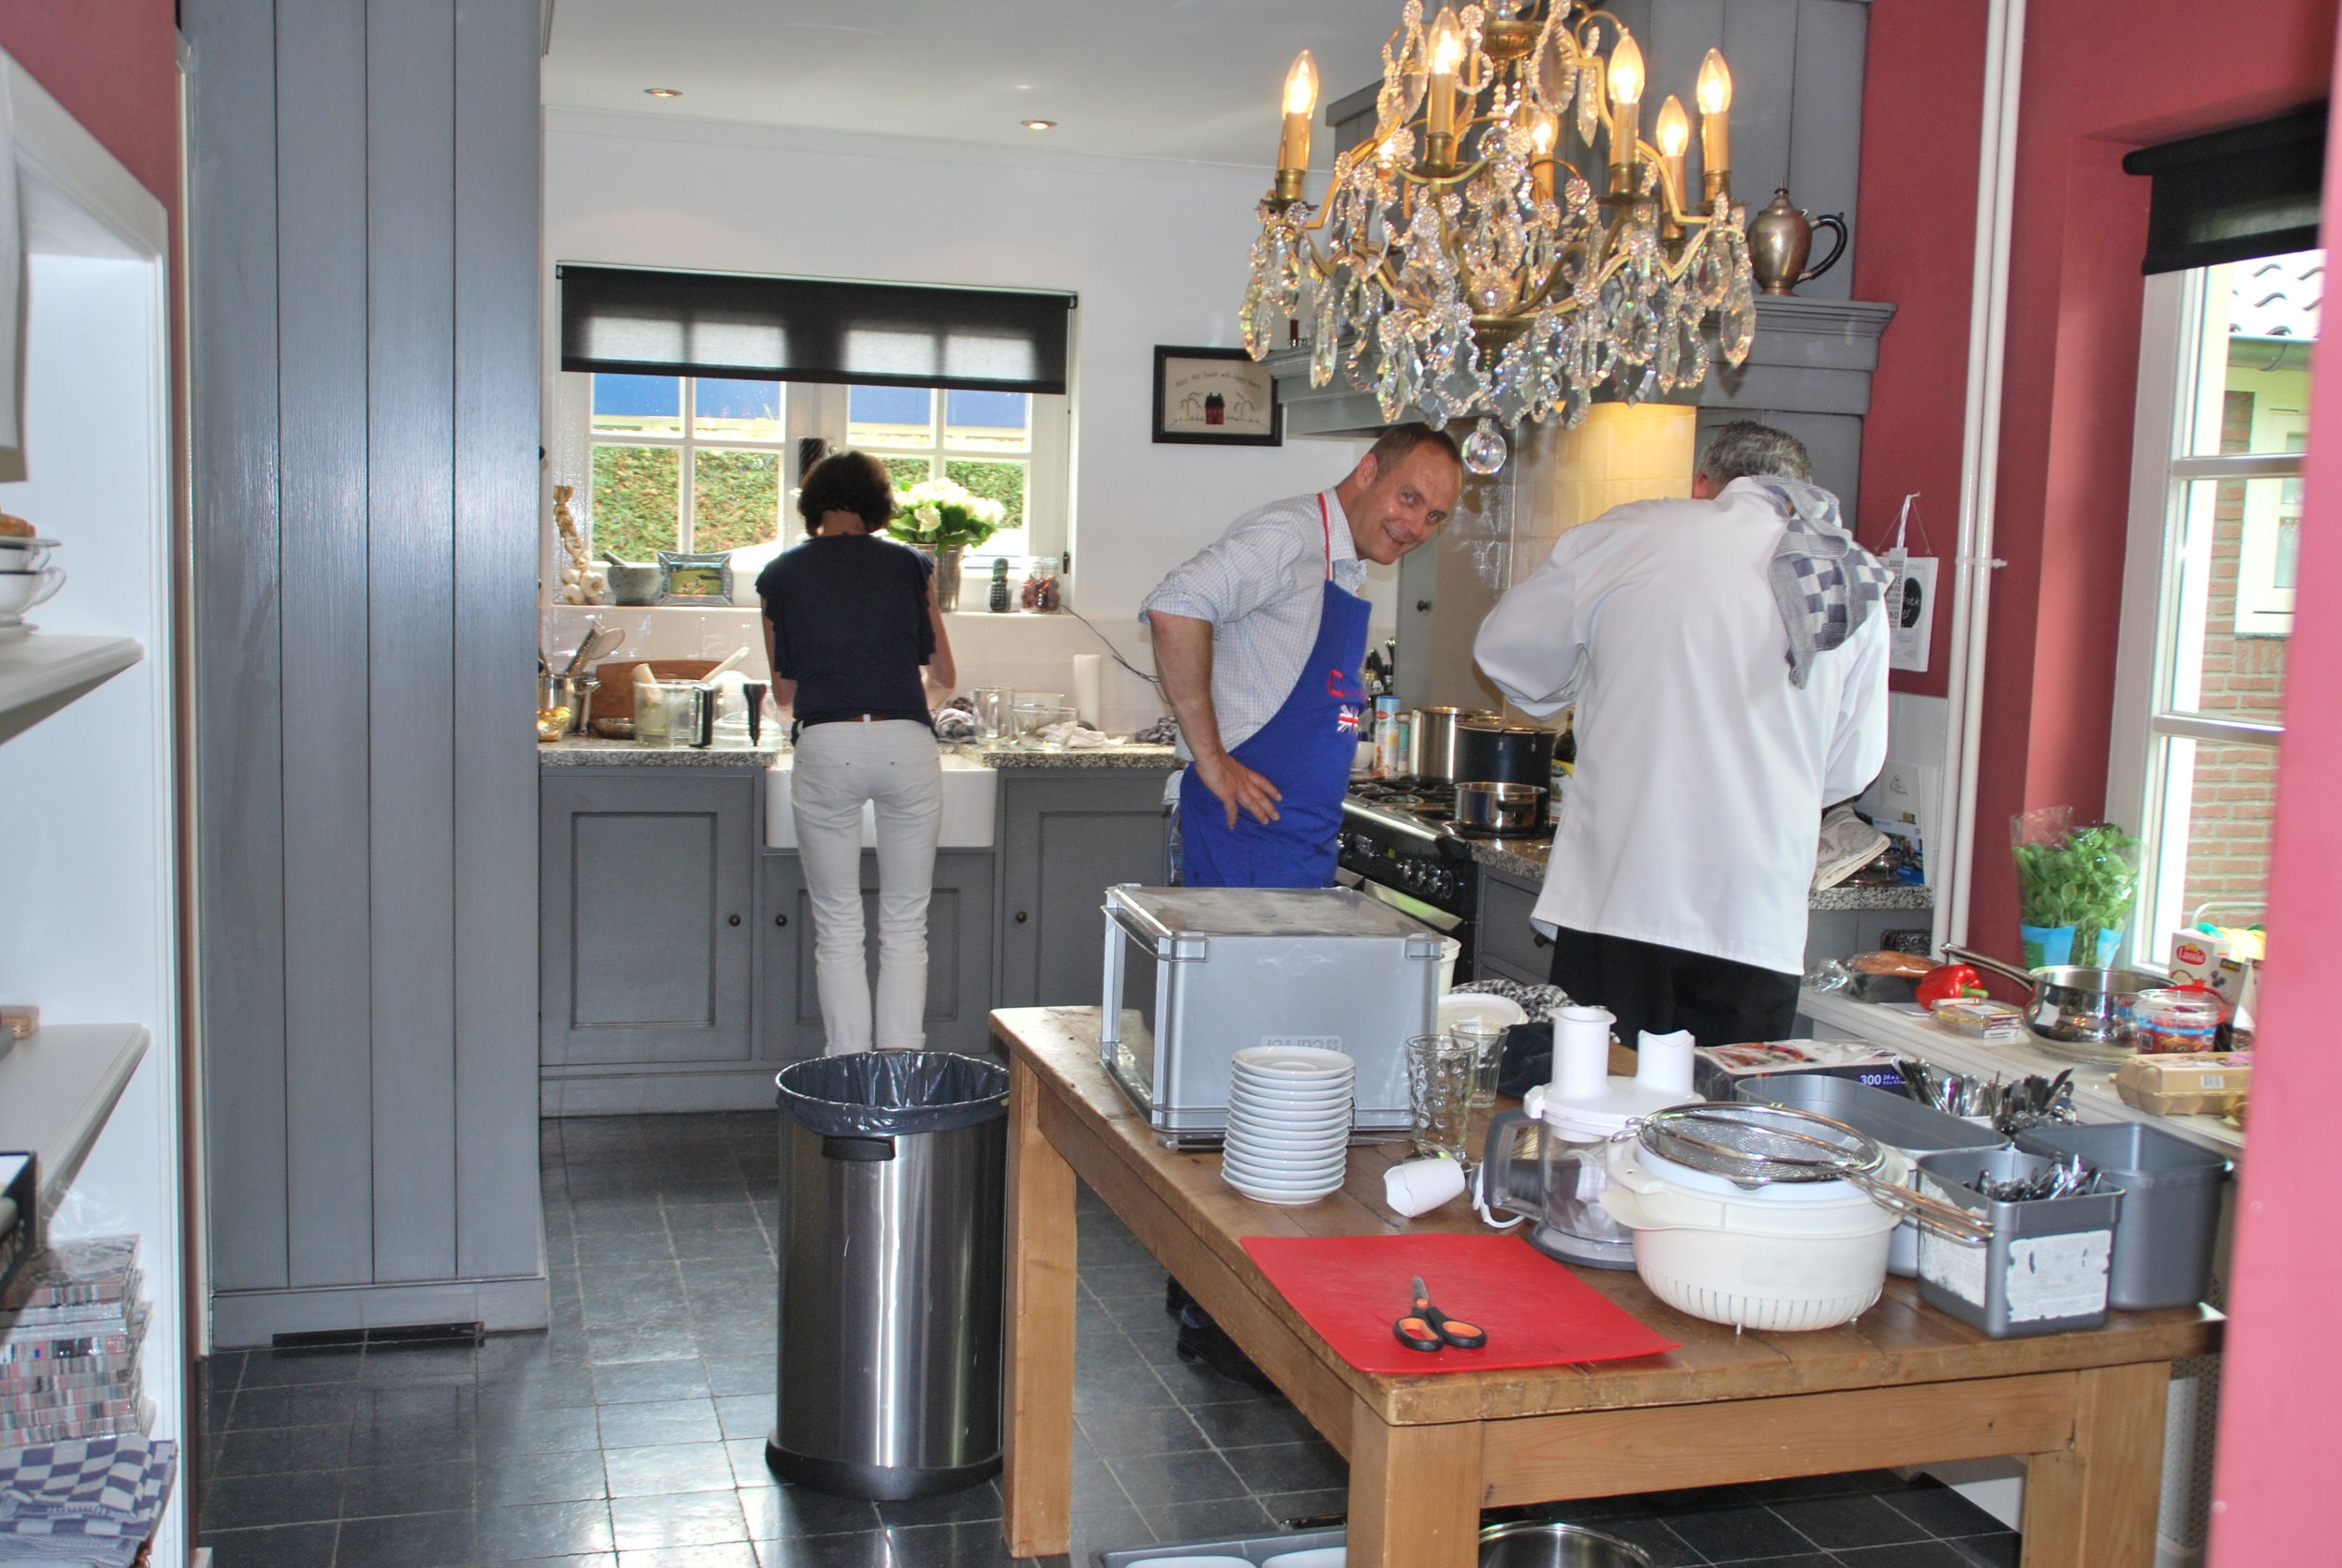 And Jem busy in the kitchen !